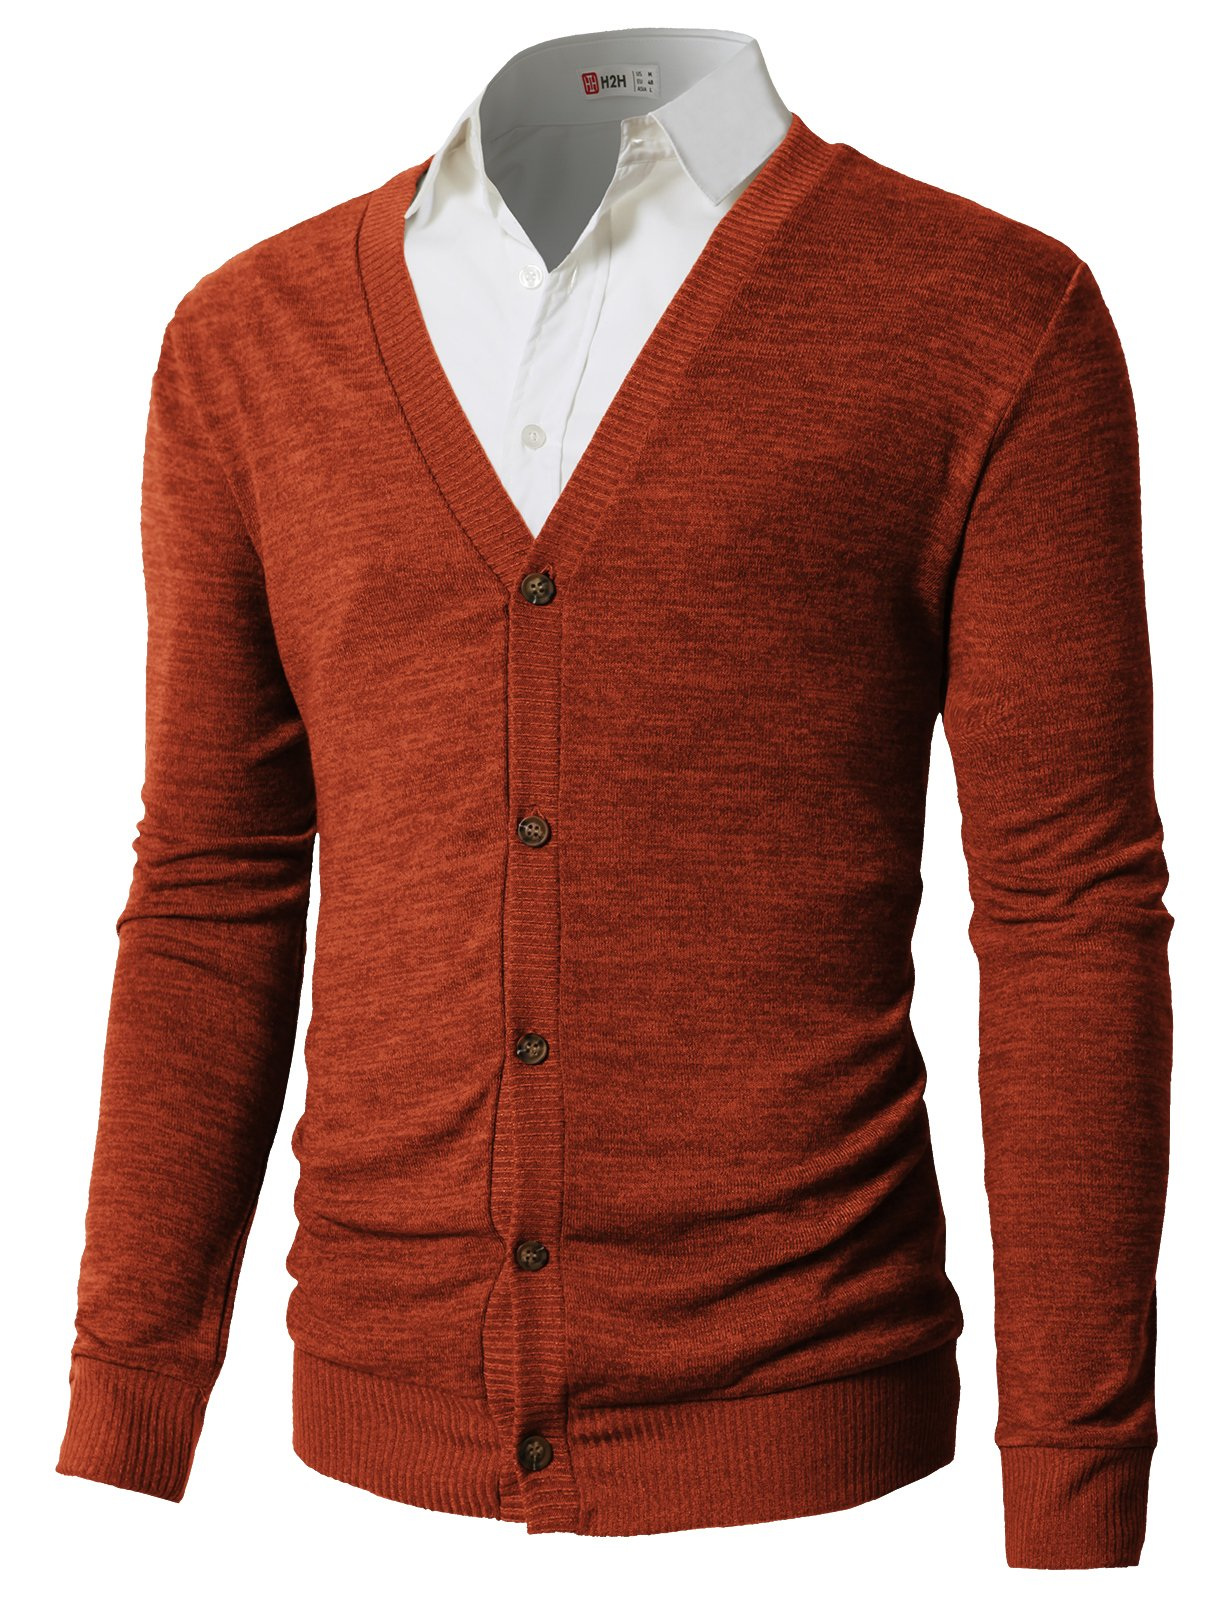 H2H Men's Chic Stylish Fine Knit Casual Knitted Cardigan Sweater Orange US 2XL/Asia 3XL (CMOCAL023)